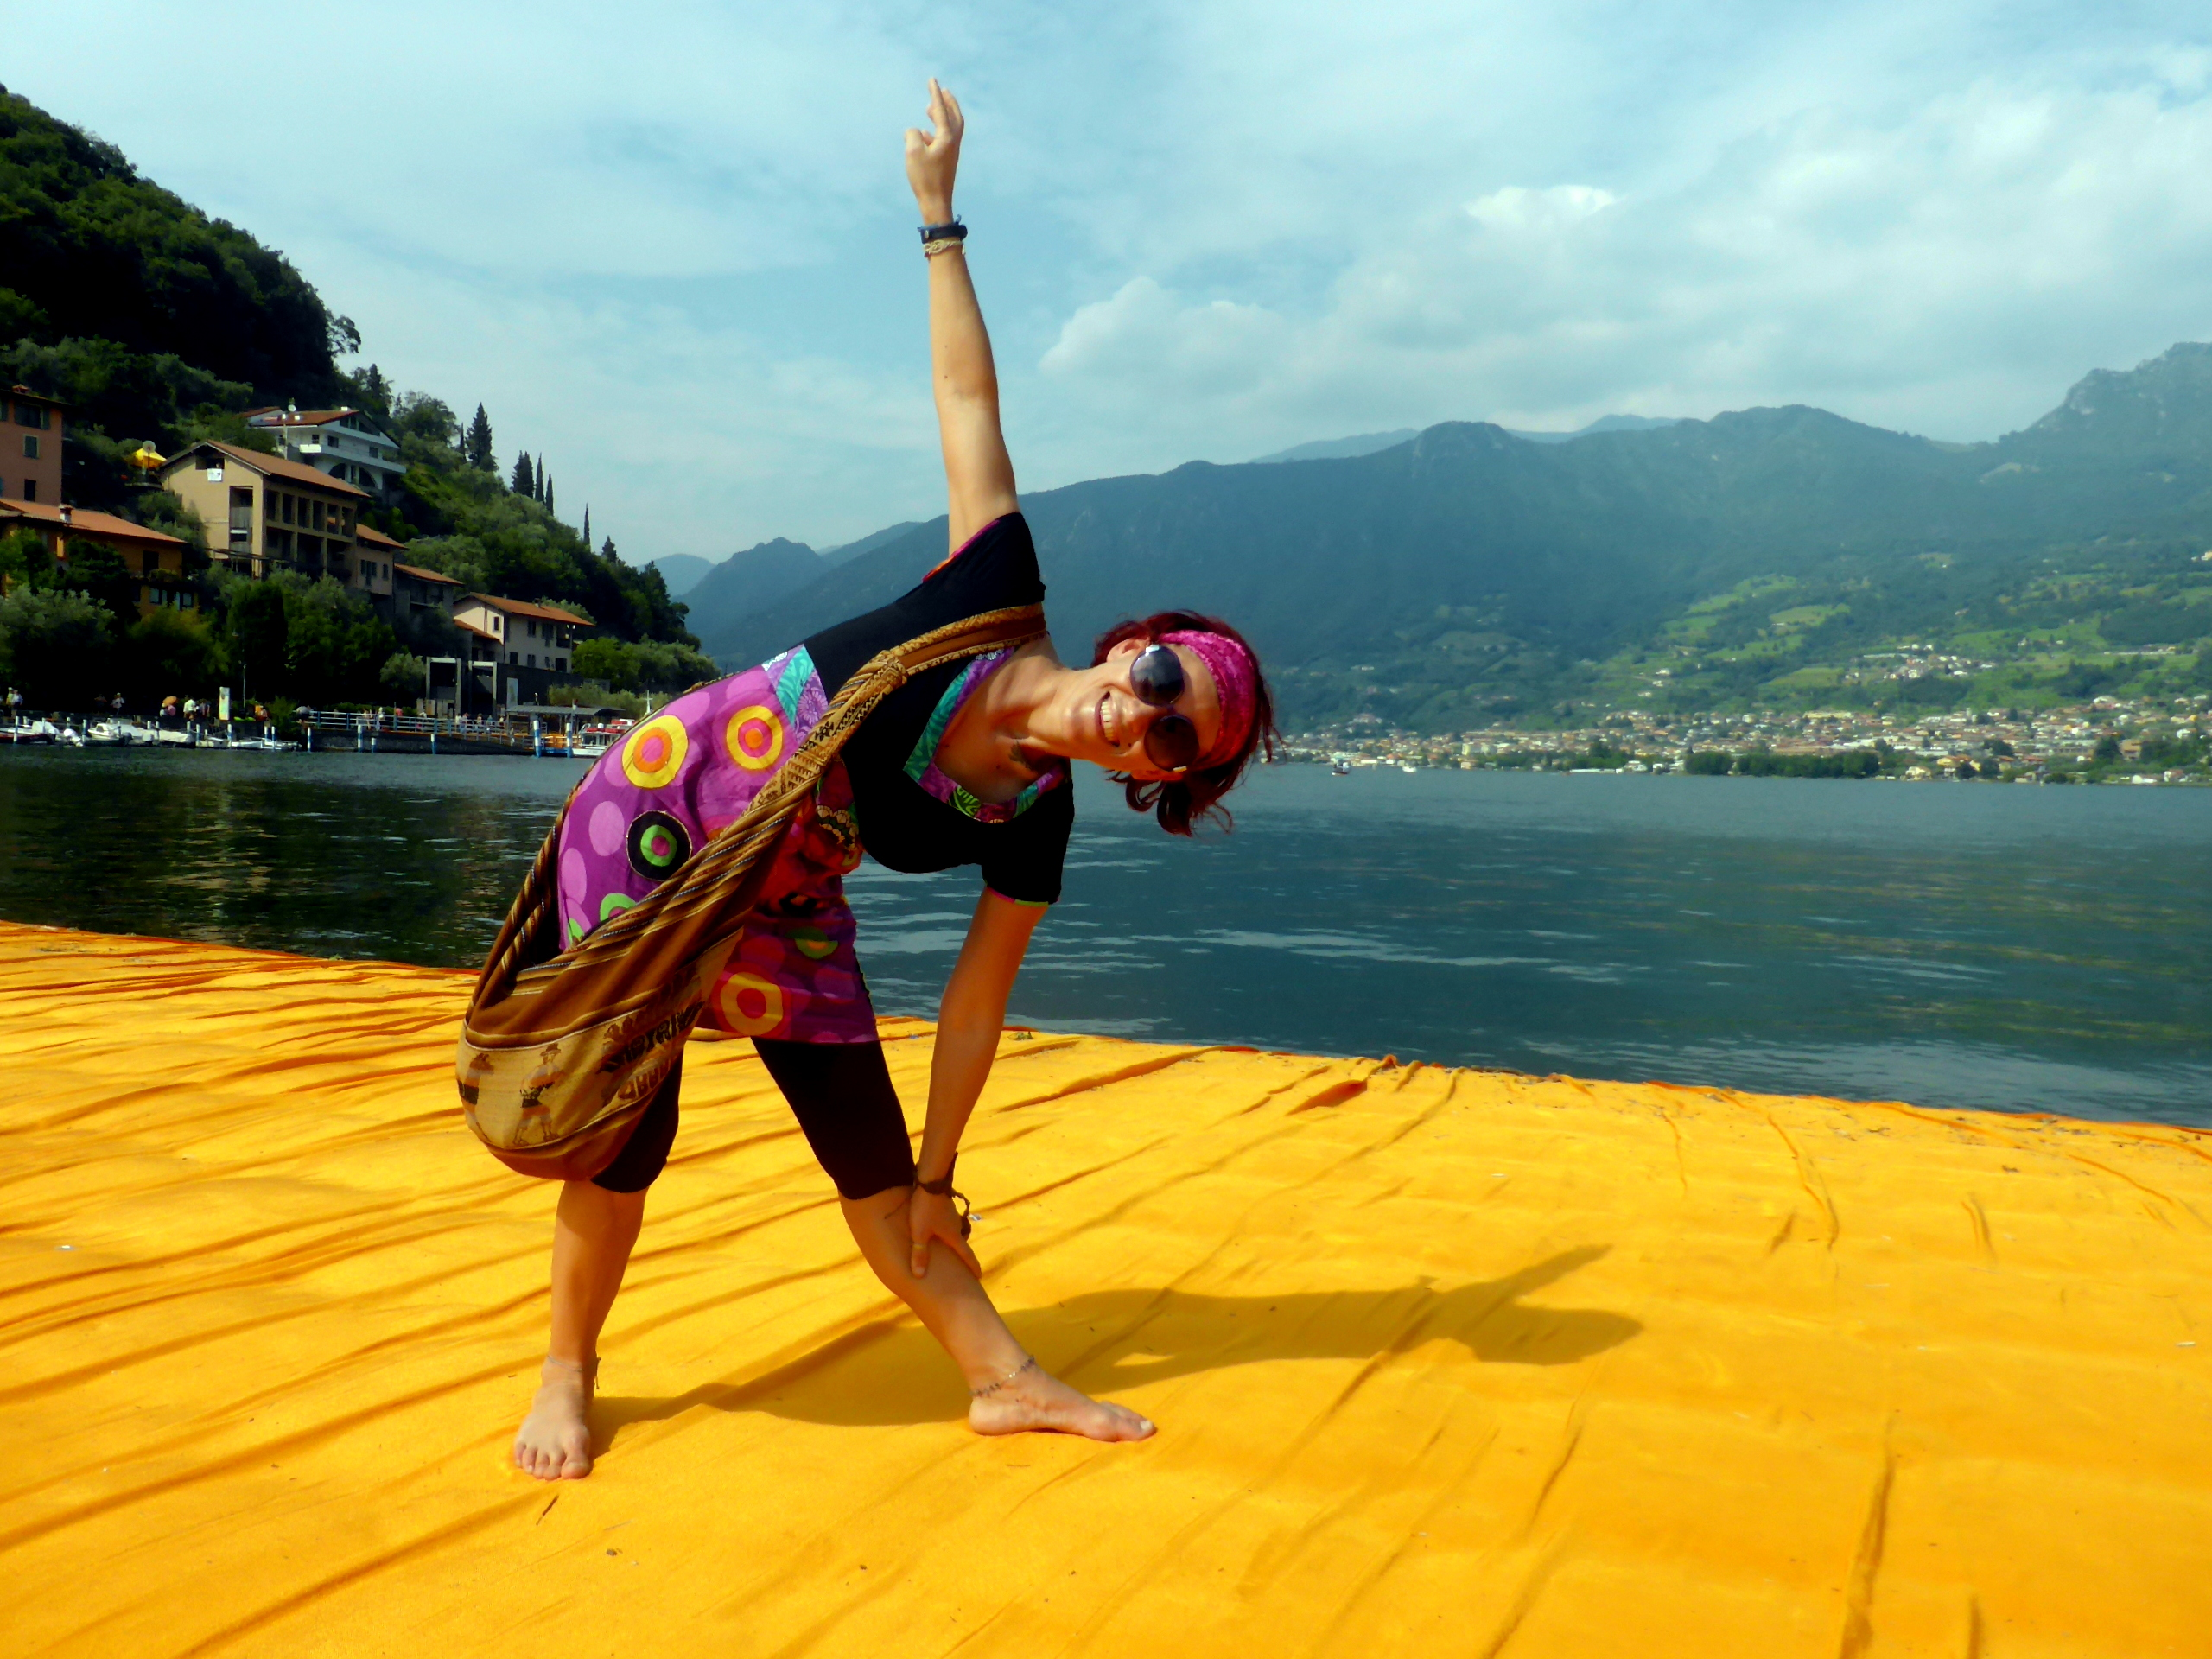 La Globetrotter su The Floating Piers